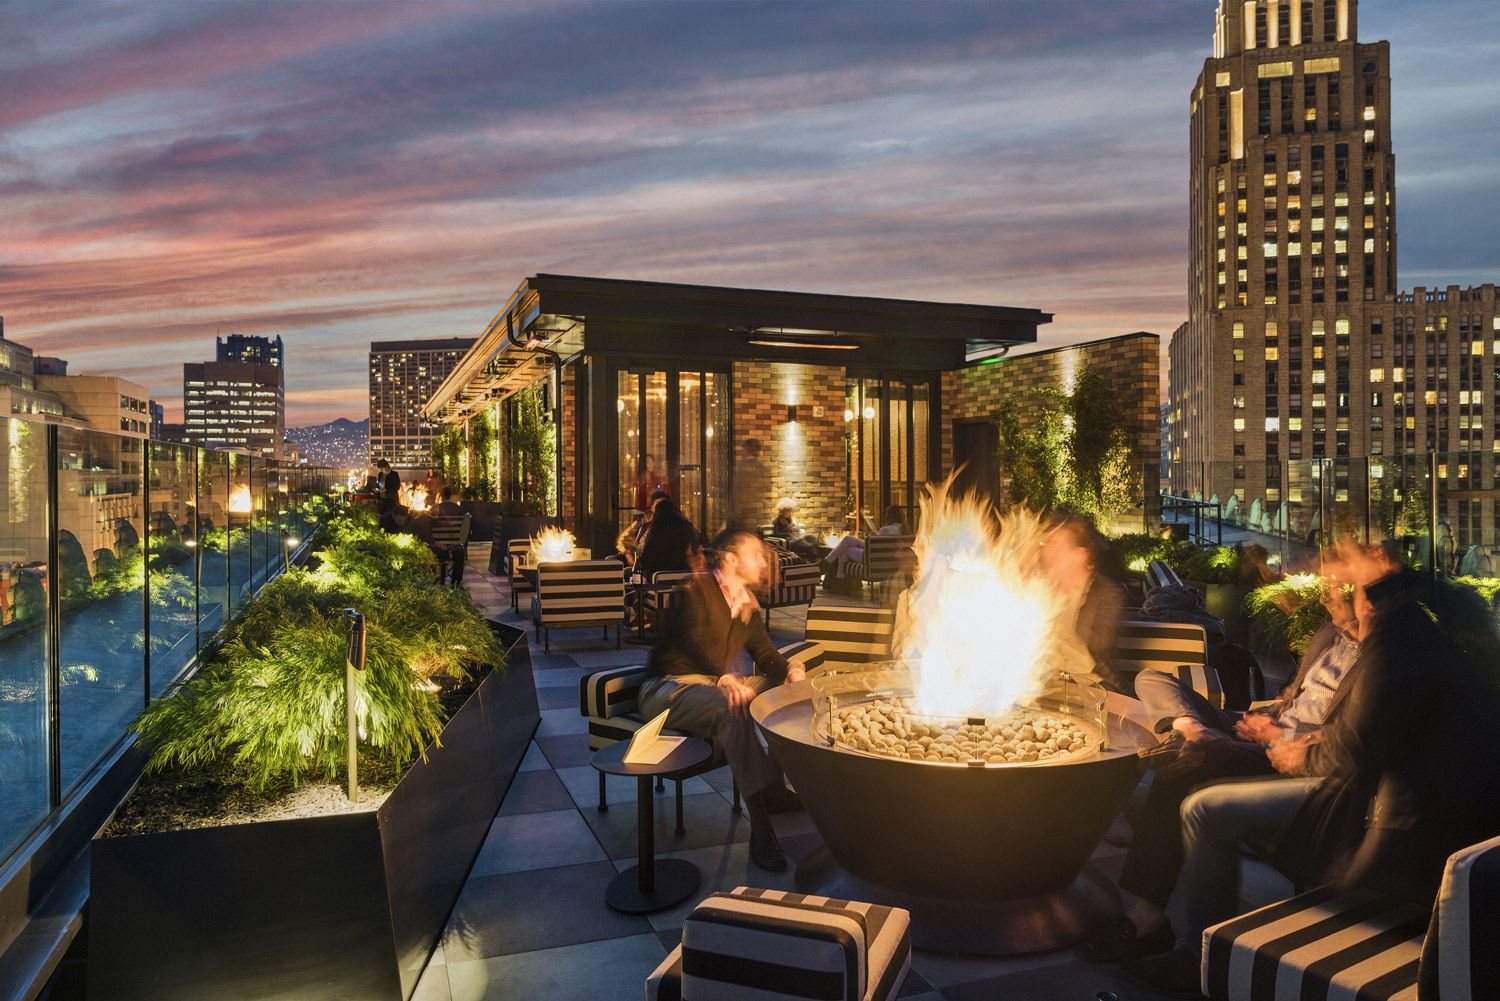 Lifestyle Luxury Hotels In The Usa Proper Hotels San Francisco Bars Best Rooftop Bars San Francisco Hotel